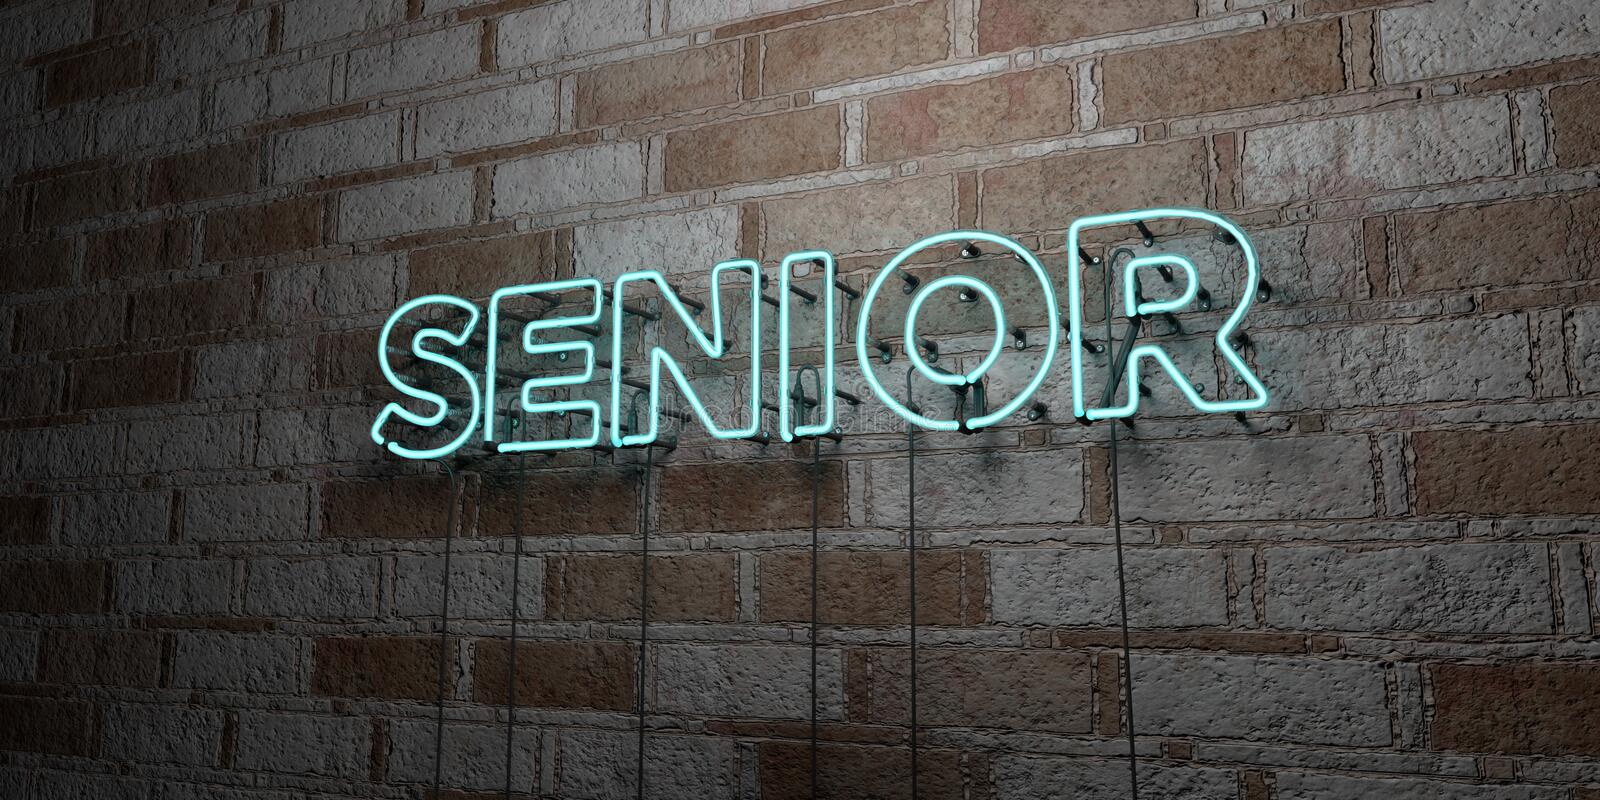 SENIOR - Glowing Neon Sign on stonework wall - 3D rendered royalty free stock illustration. Can be used for online banner ads and direct mailers vector illustration